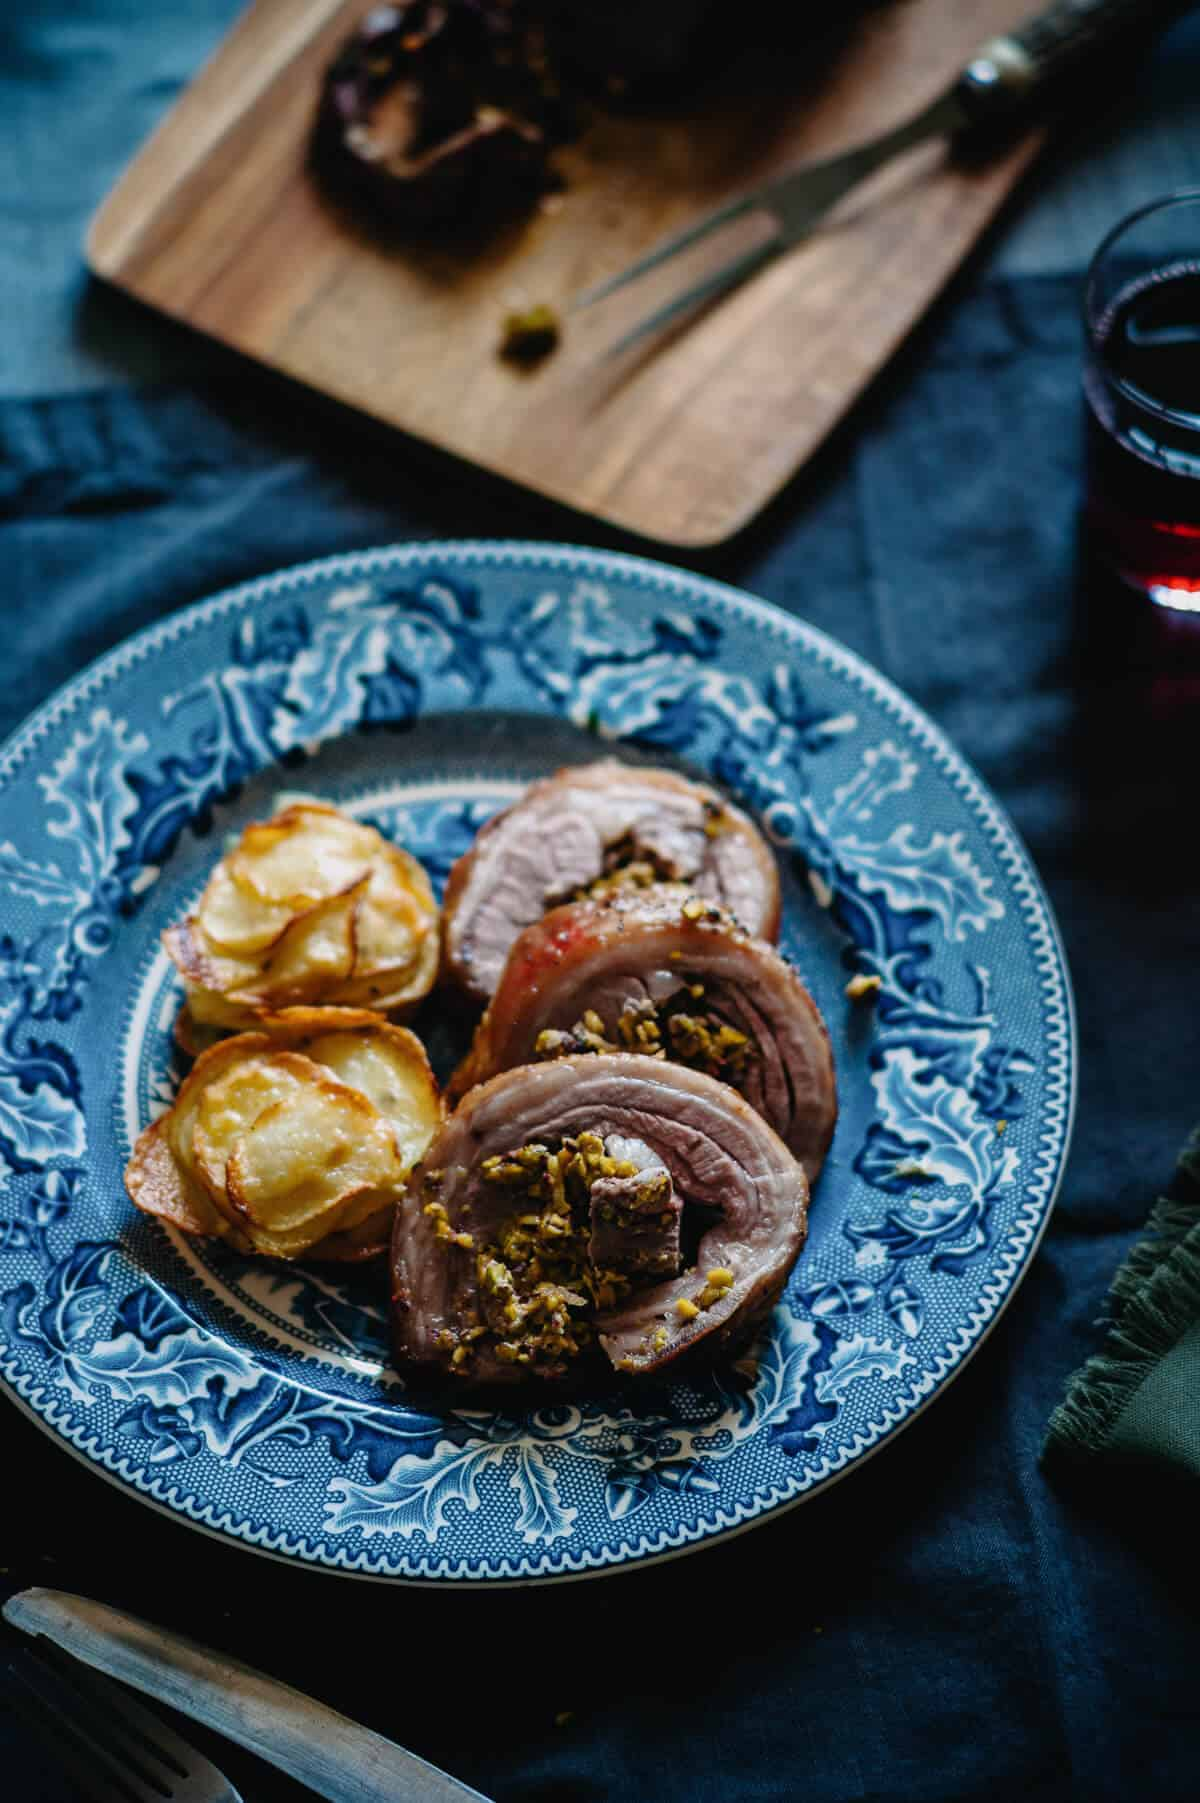 roast lamb served on a blue plate with a side of potatoes